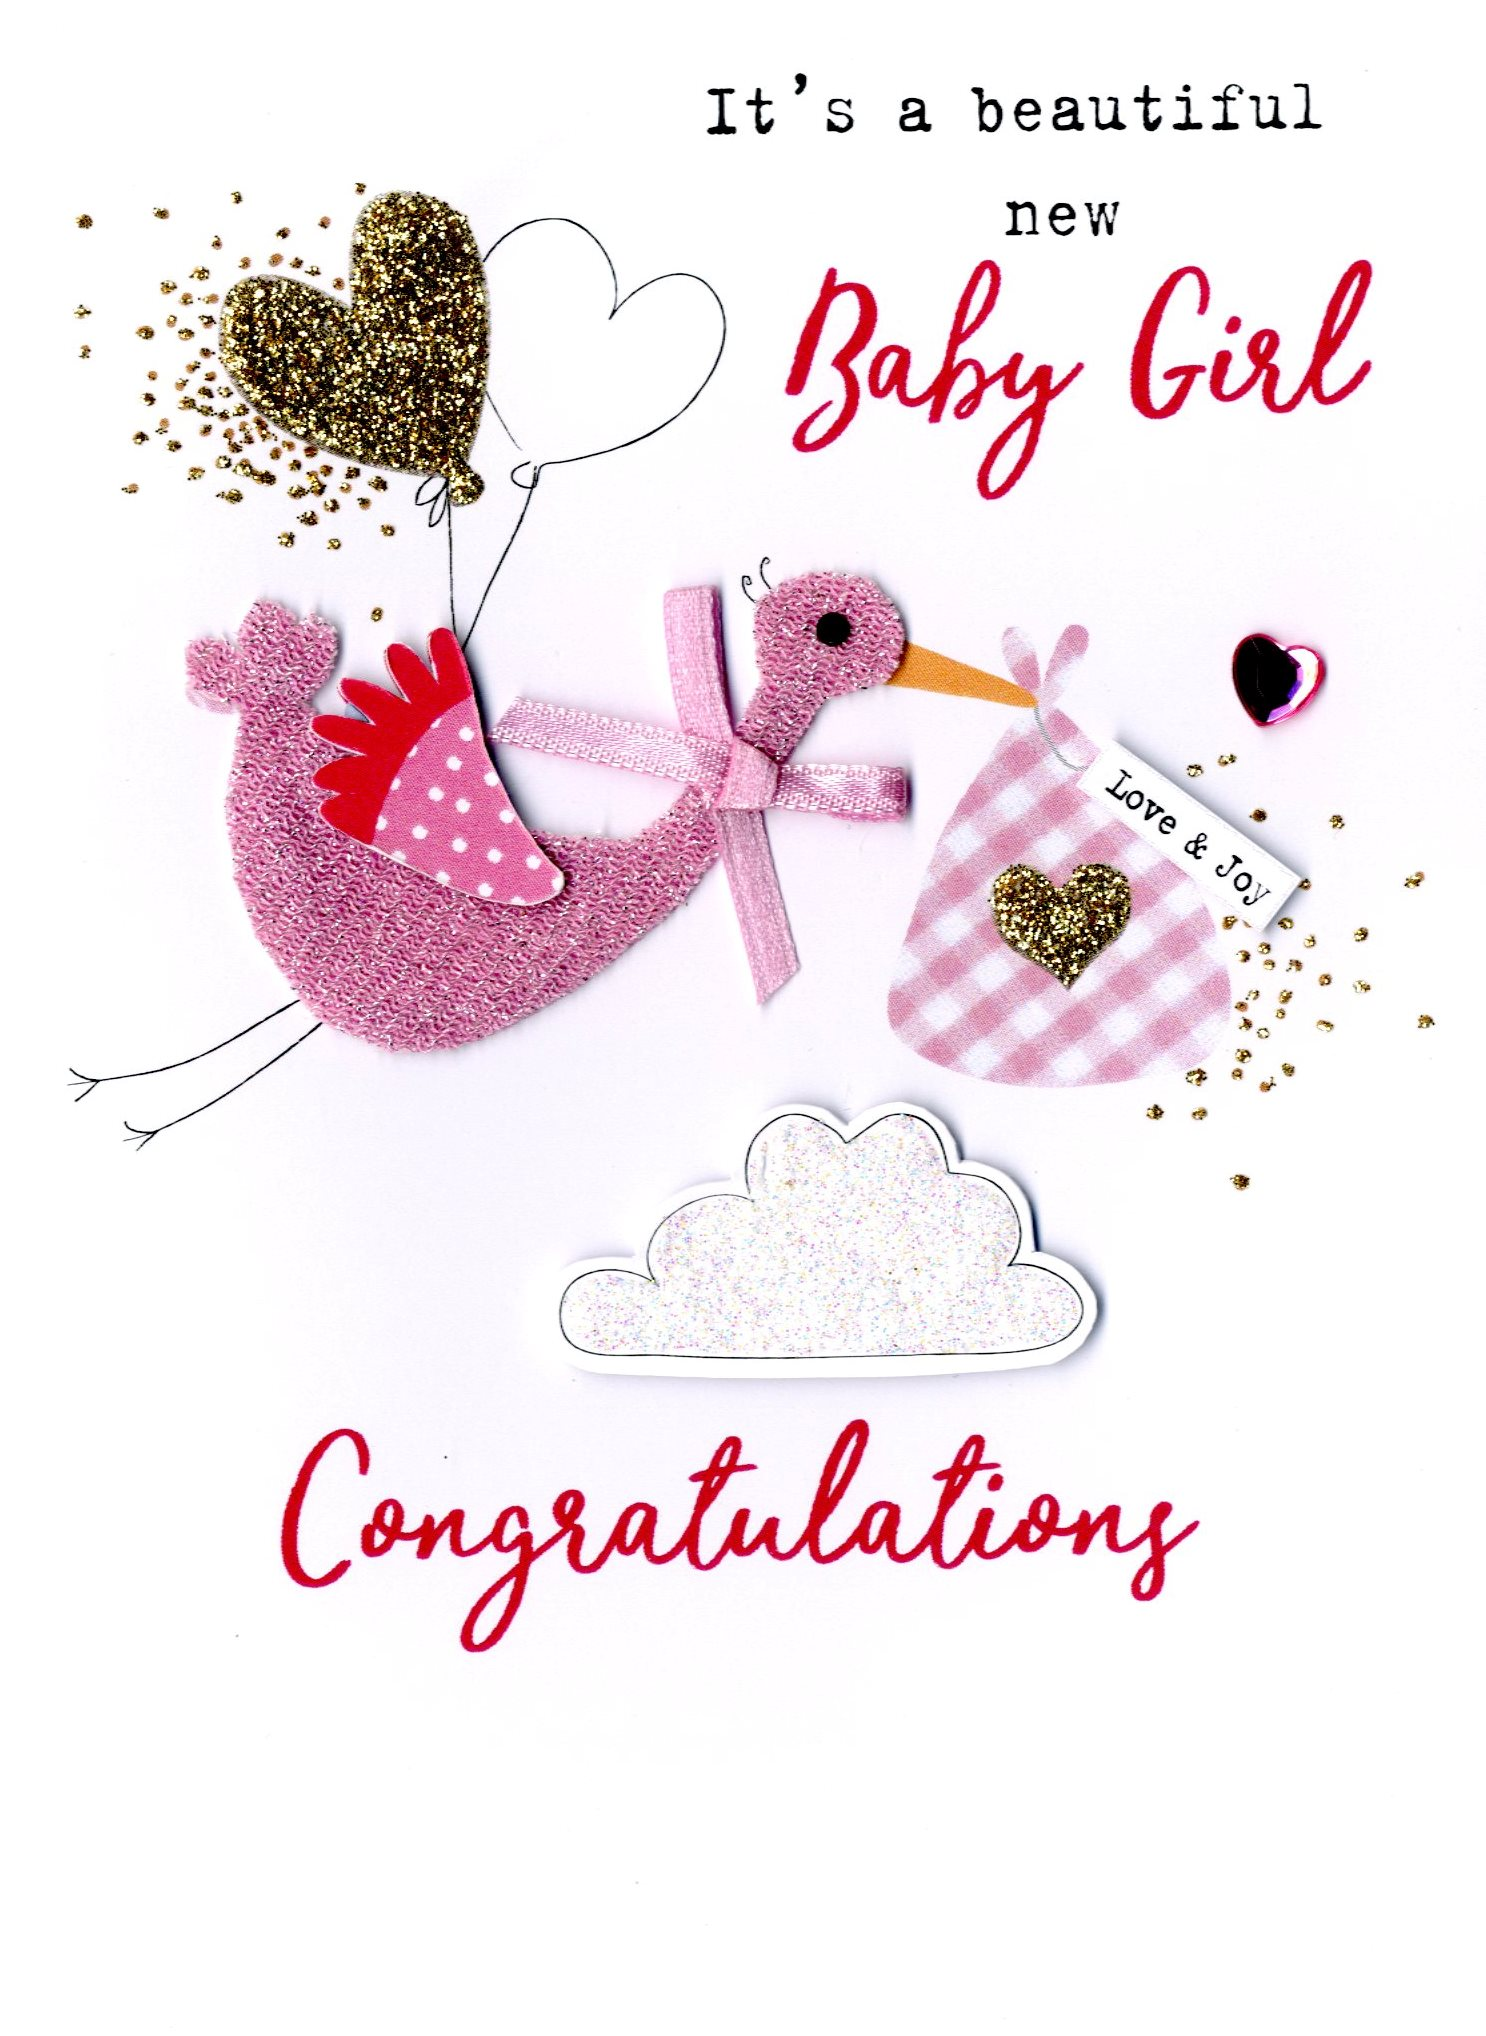 new baby girl irresistible greeting card cards love kates